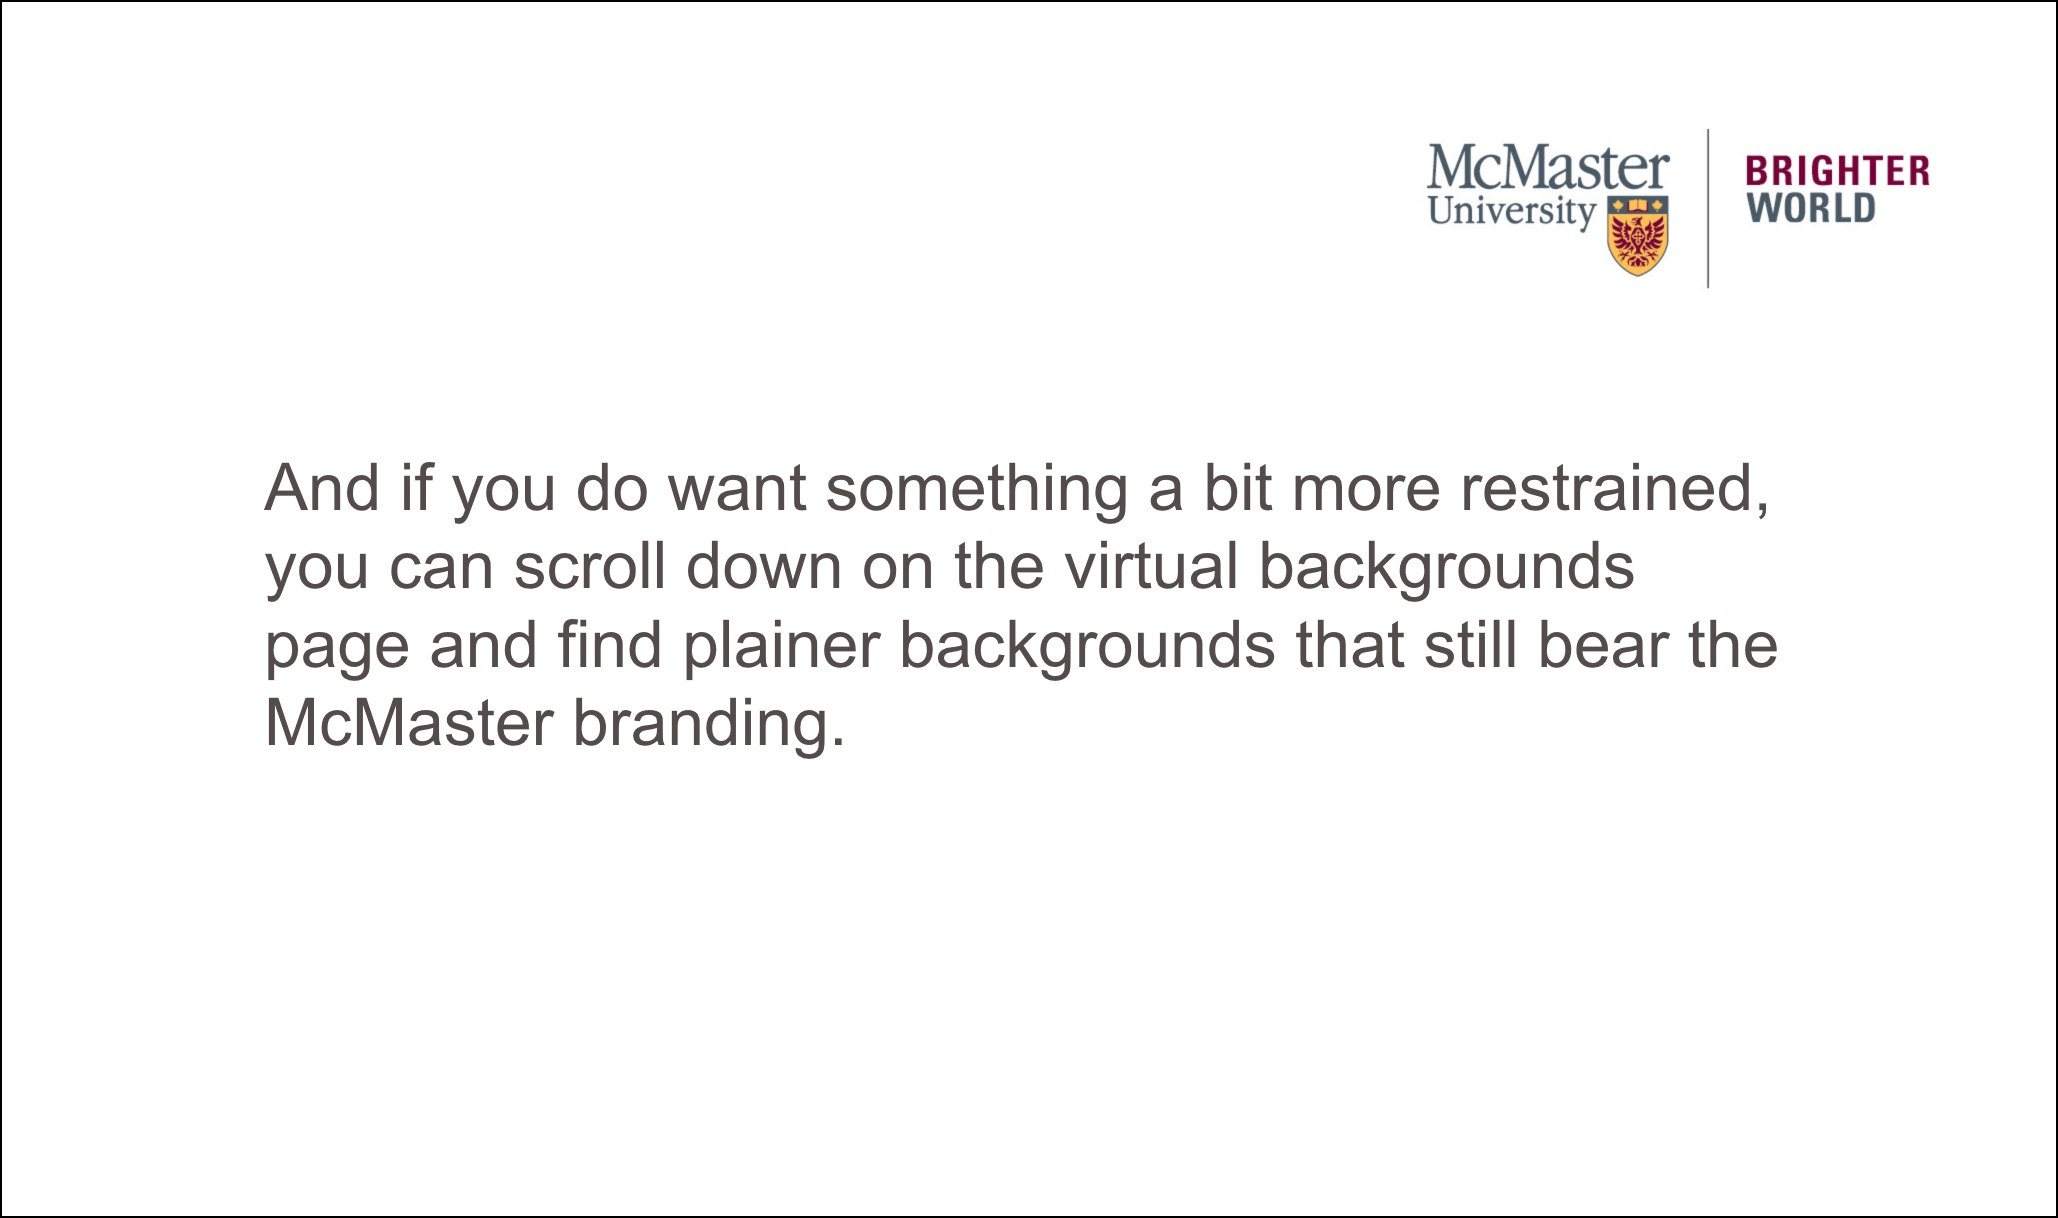 plain background says: And if you do want something a bit more restrained, you can scroll down on the virtual backgrounds page and find plainer backgrounds that still bear the McMaster branding.